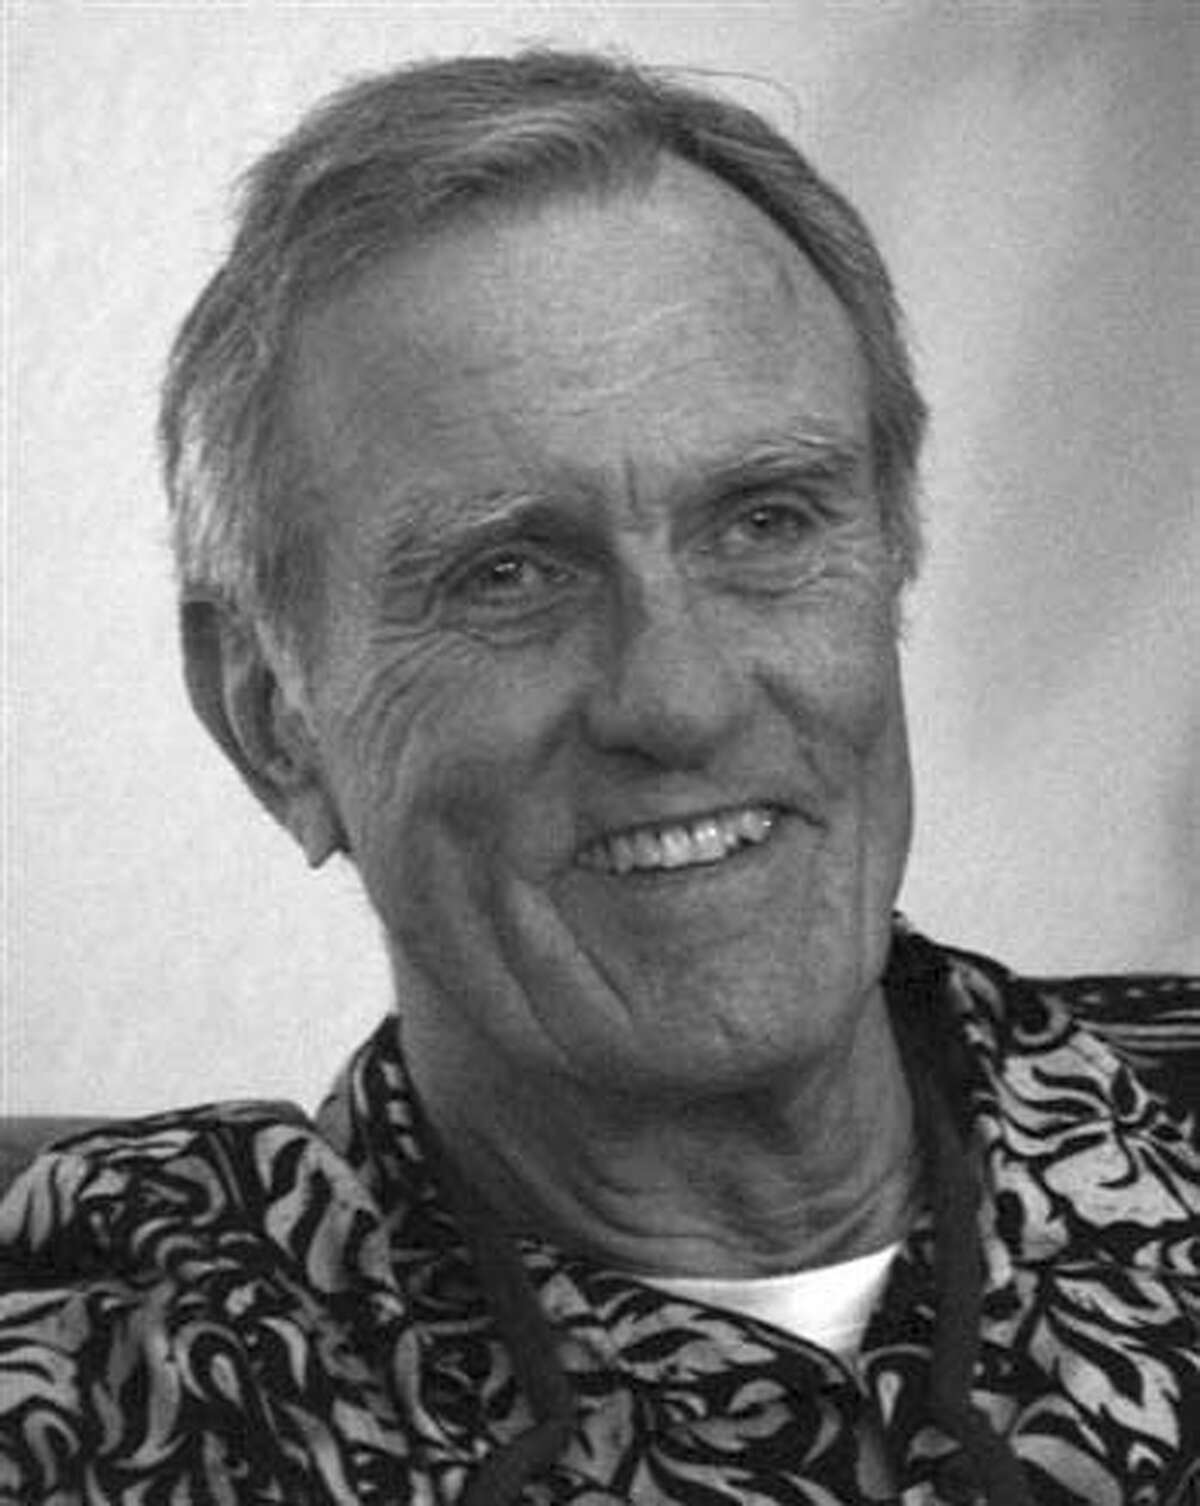 Photo of Donald McCoy, the hippie benefactor, for his Obituary. Metro#Metro#Chronicle#10/24/2004#ALL#5star##0422422013